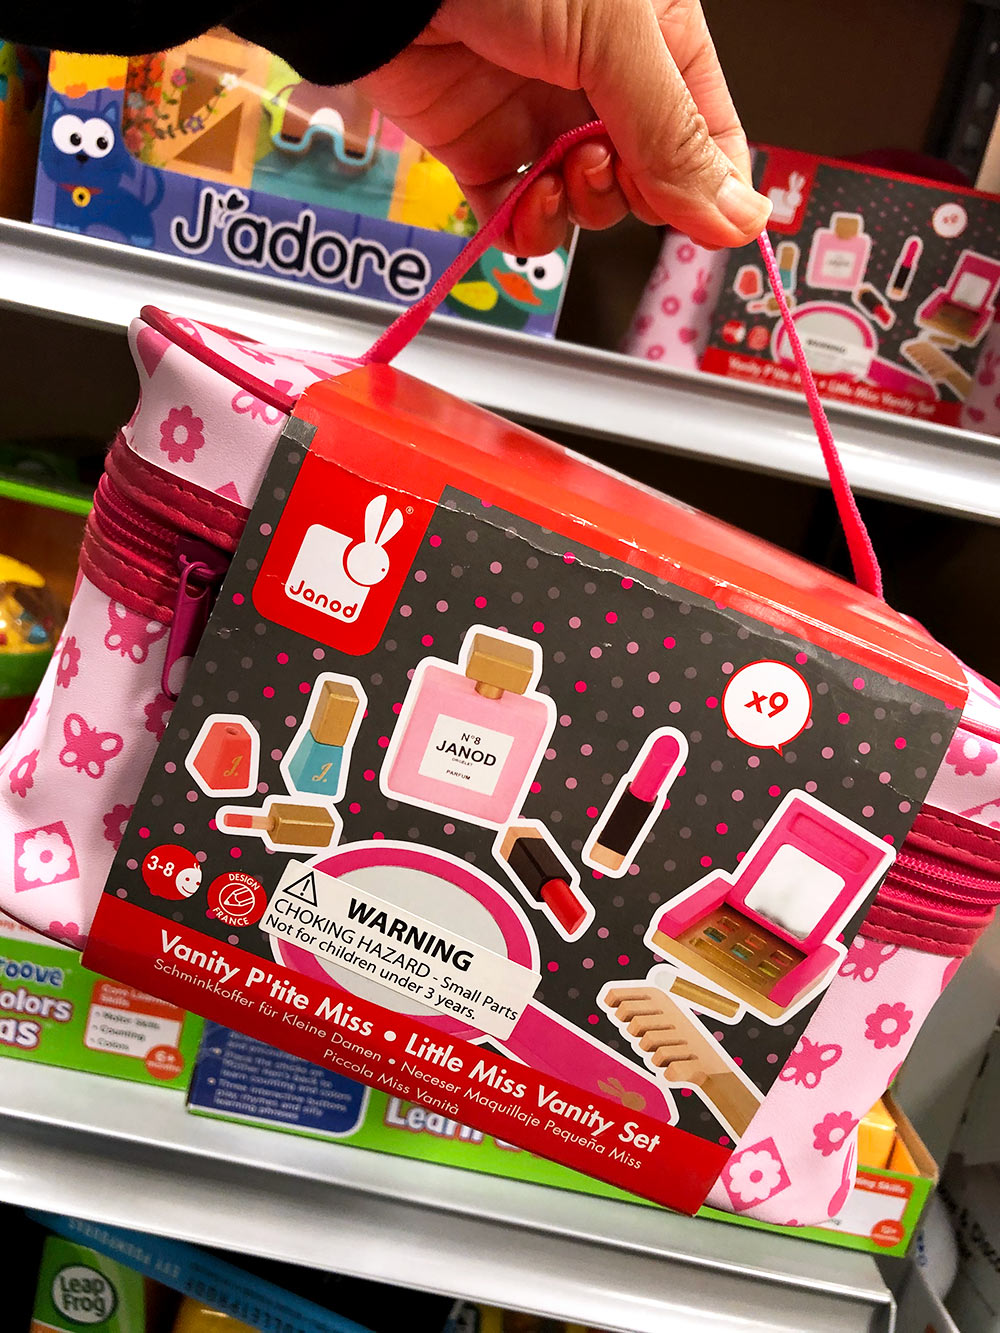 janod wooden toys